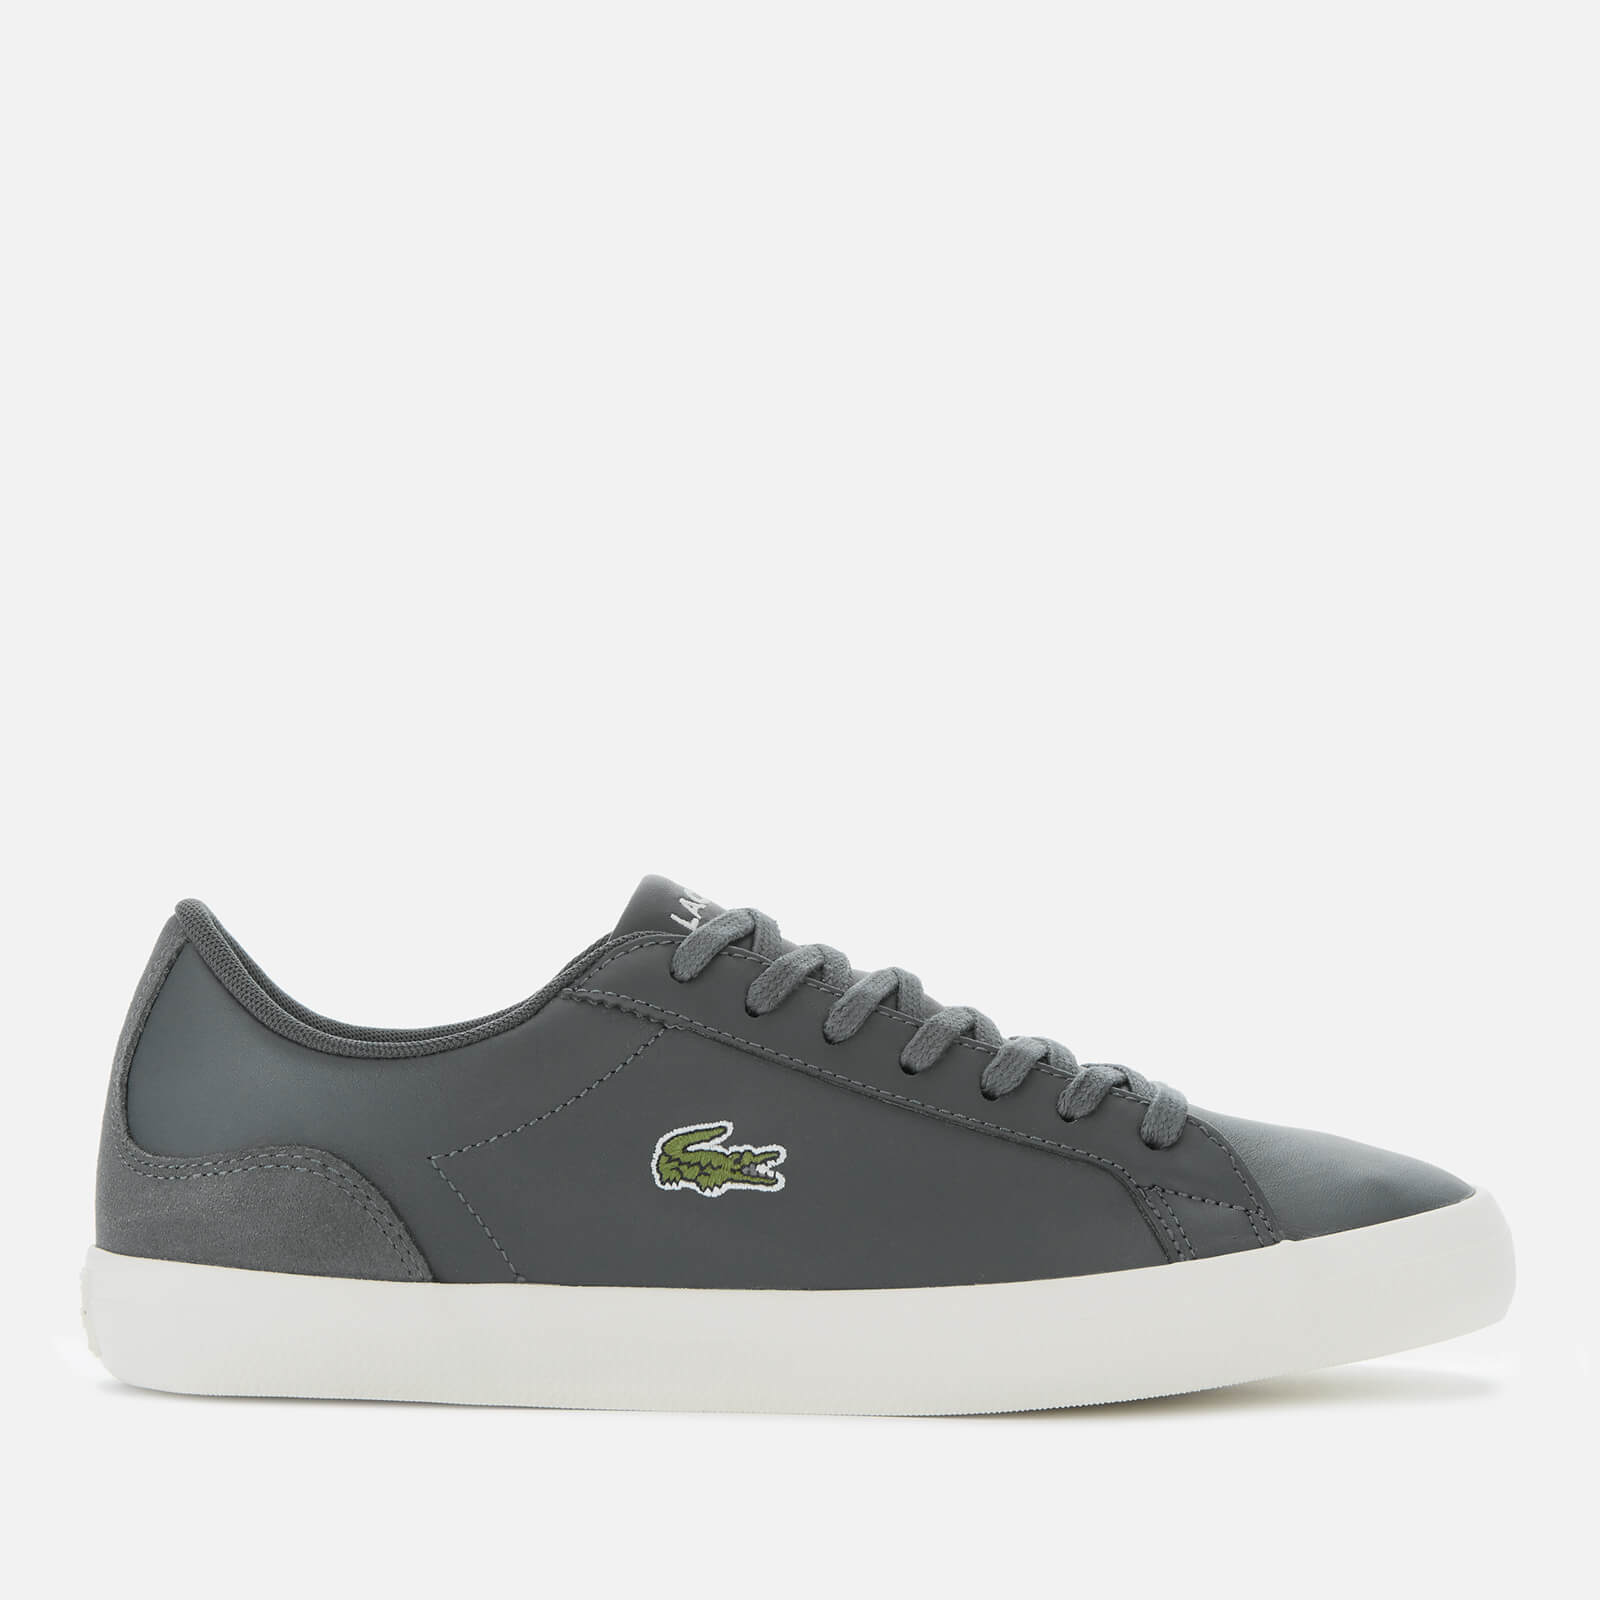 Lacoste Men's Lerond Leather and Suede